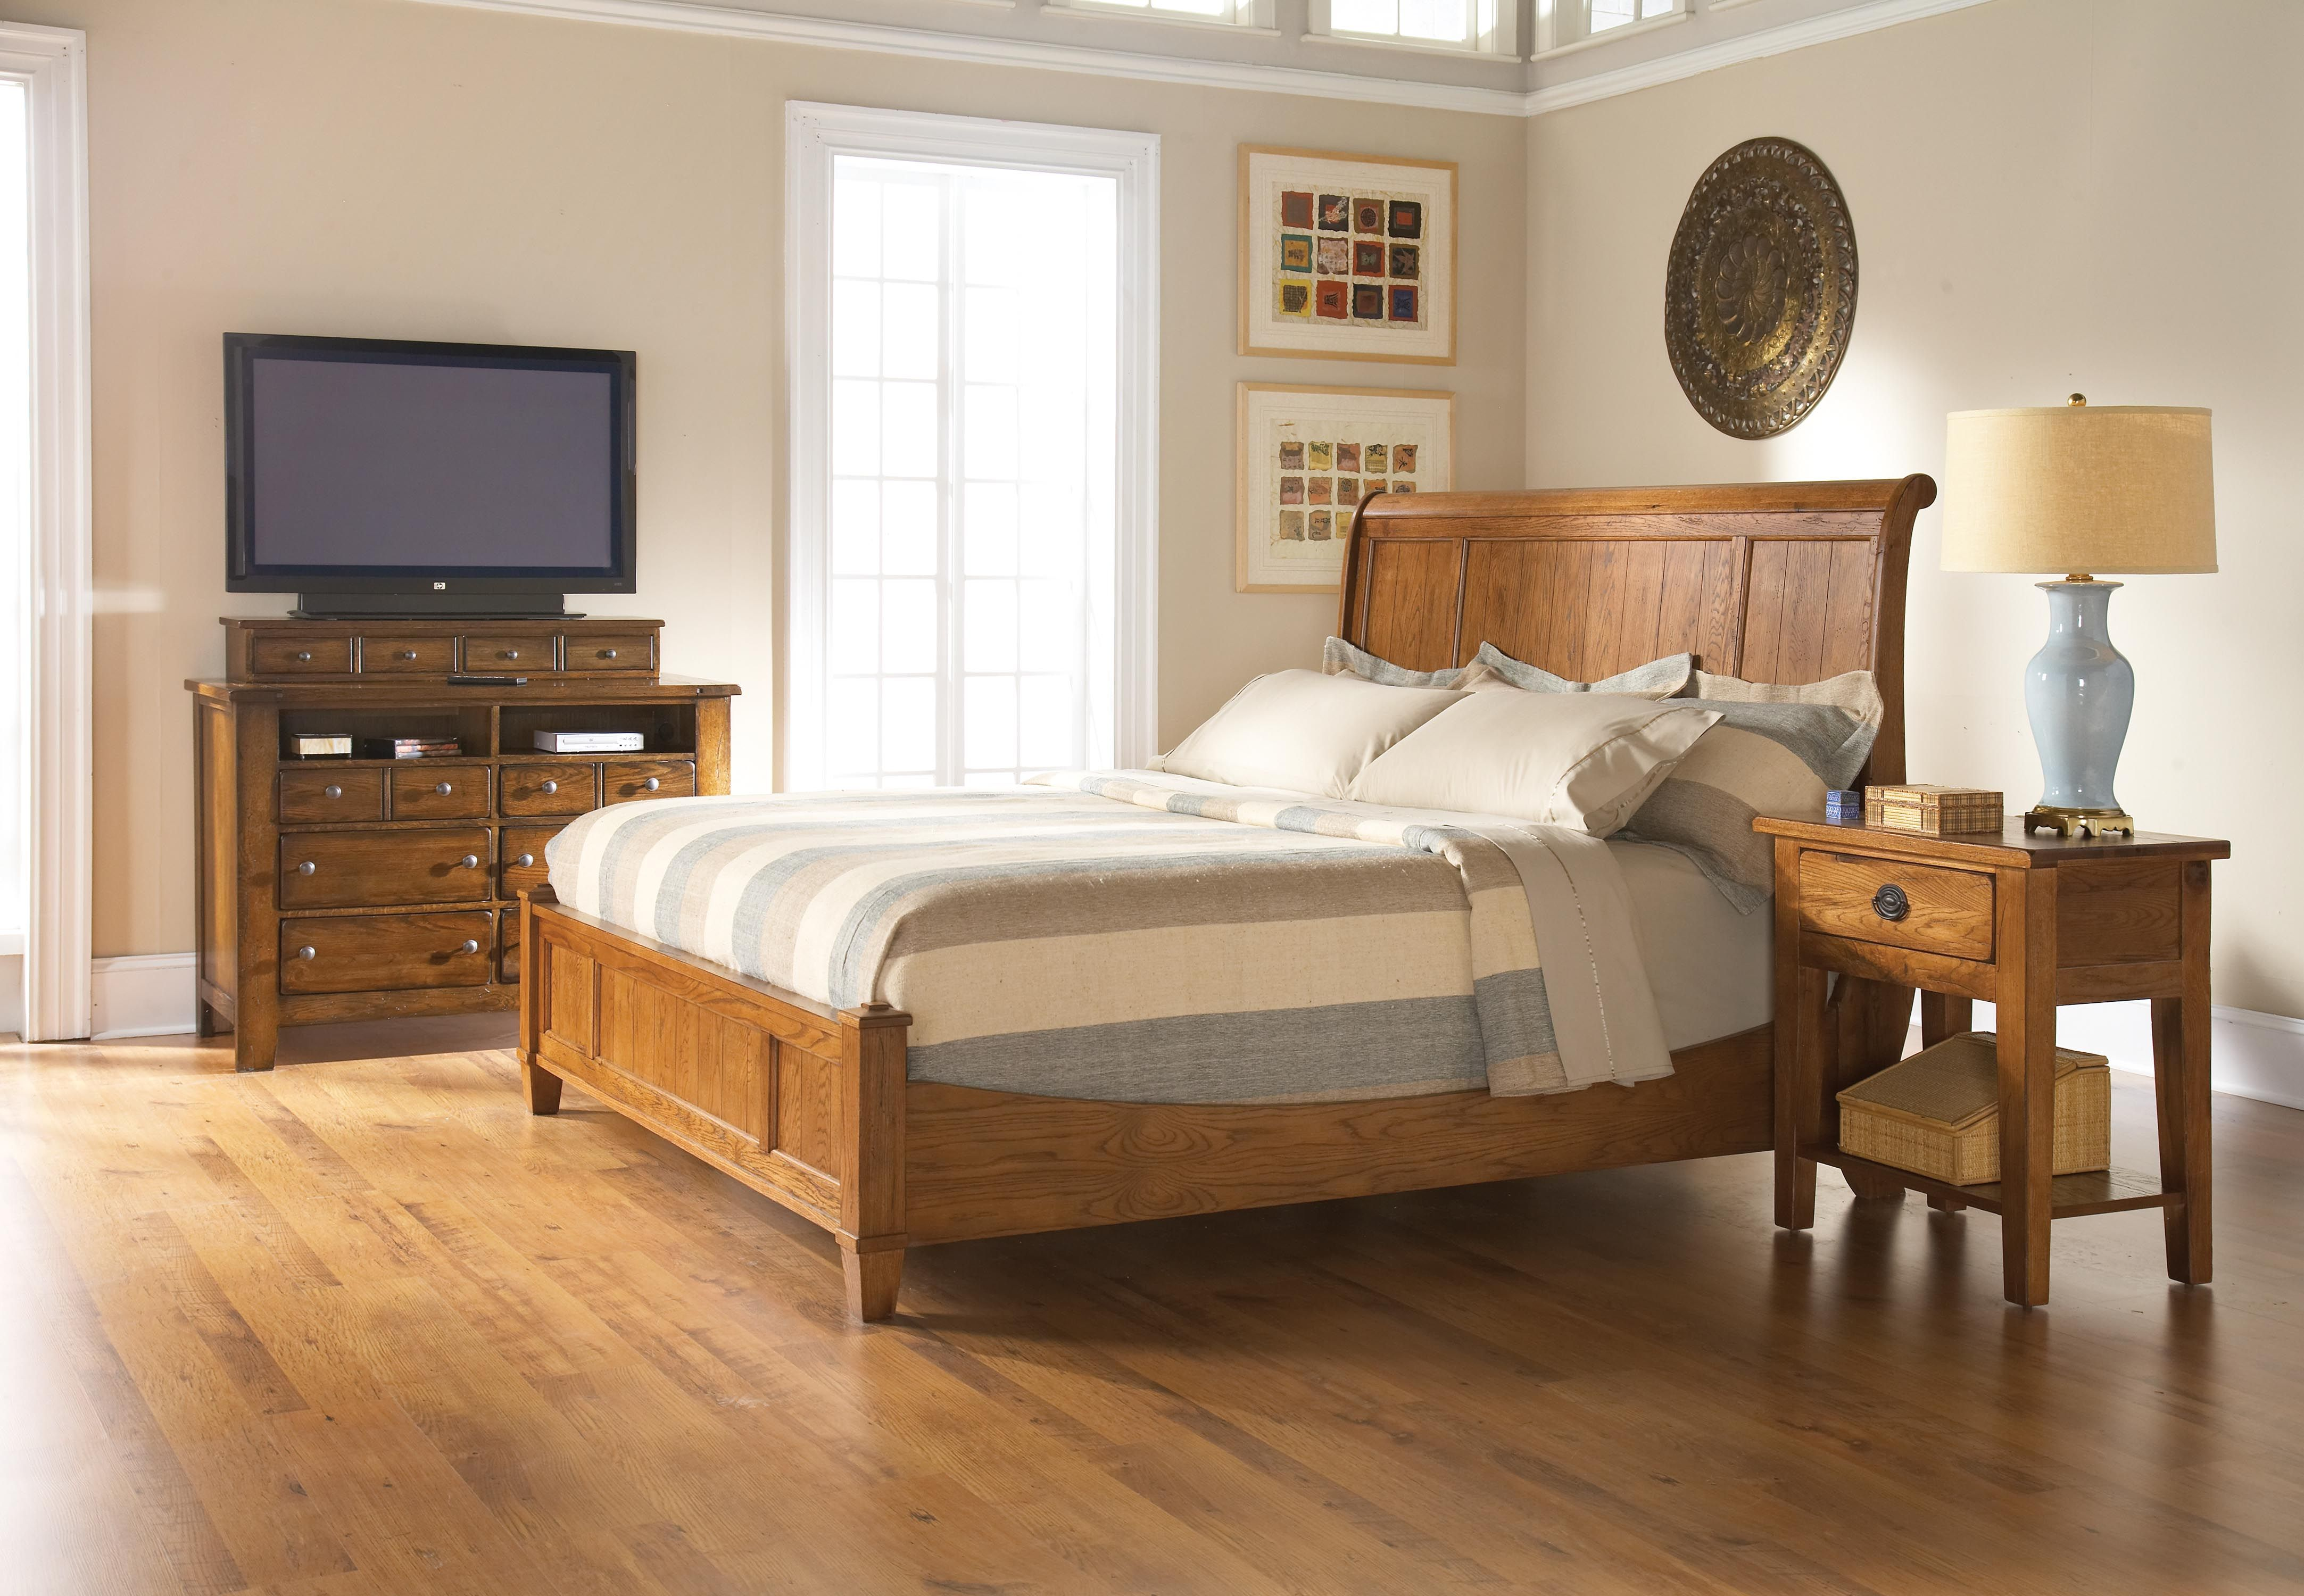 Best Broyhill Attic Heirlooms King Sleigh Bed Br With Images 400 x 300